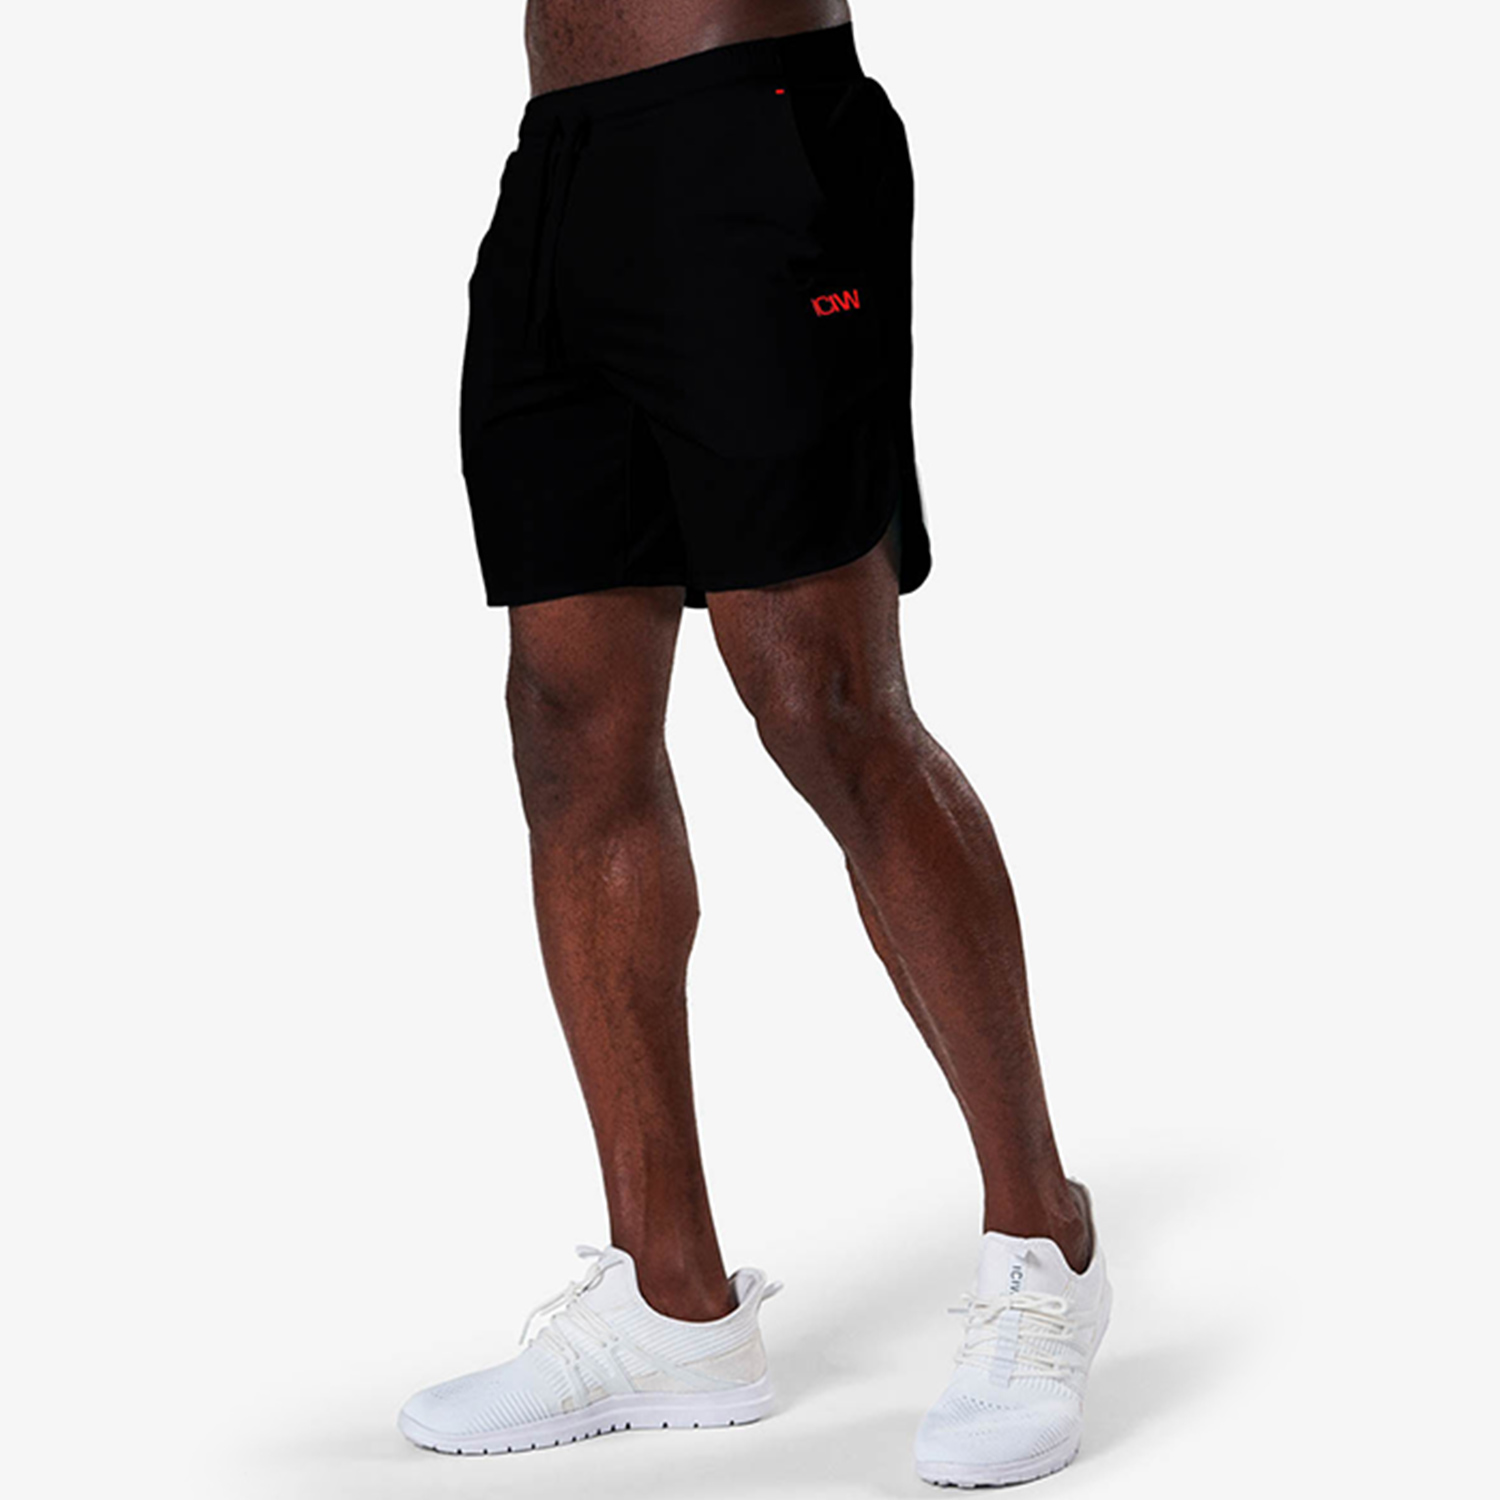 Competitor Shorts, Black